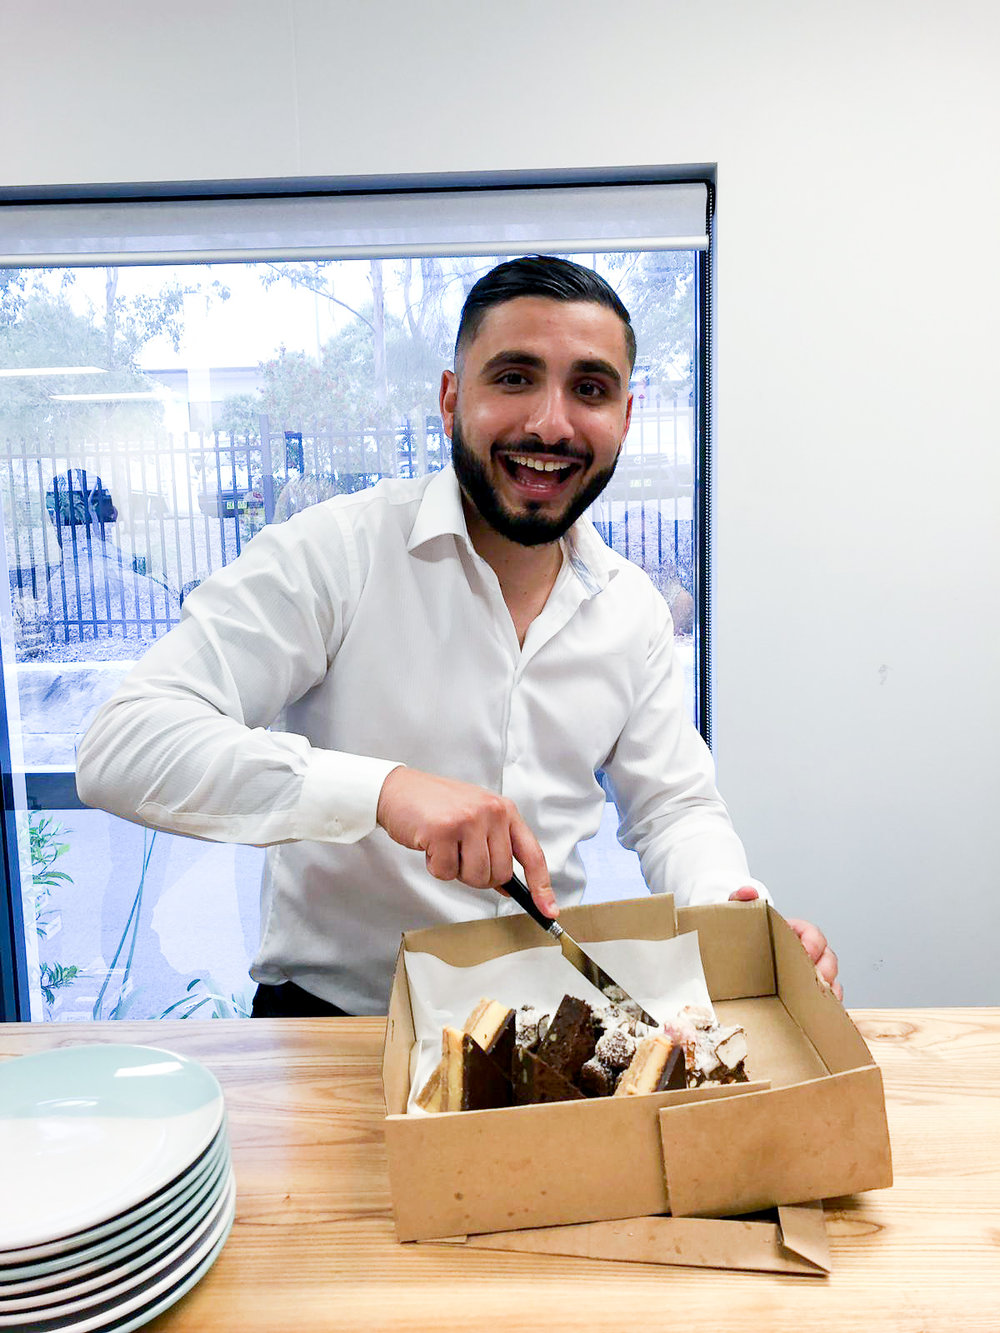 Well done  Nabil Boumoughdab  on your first of many achievements in the business!